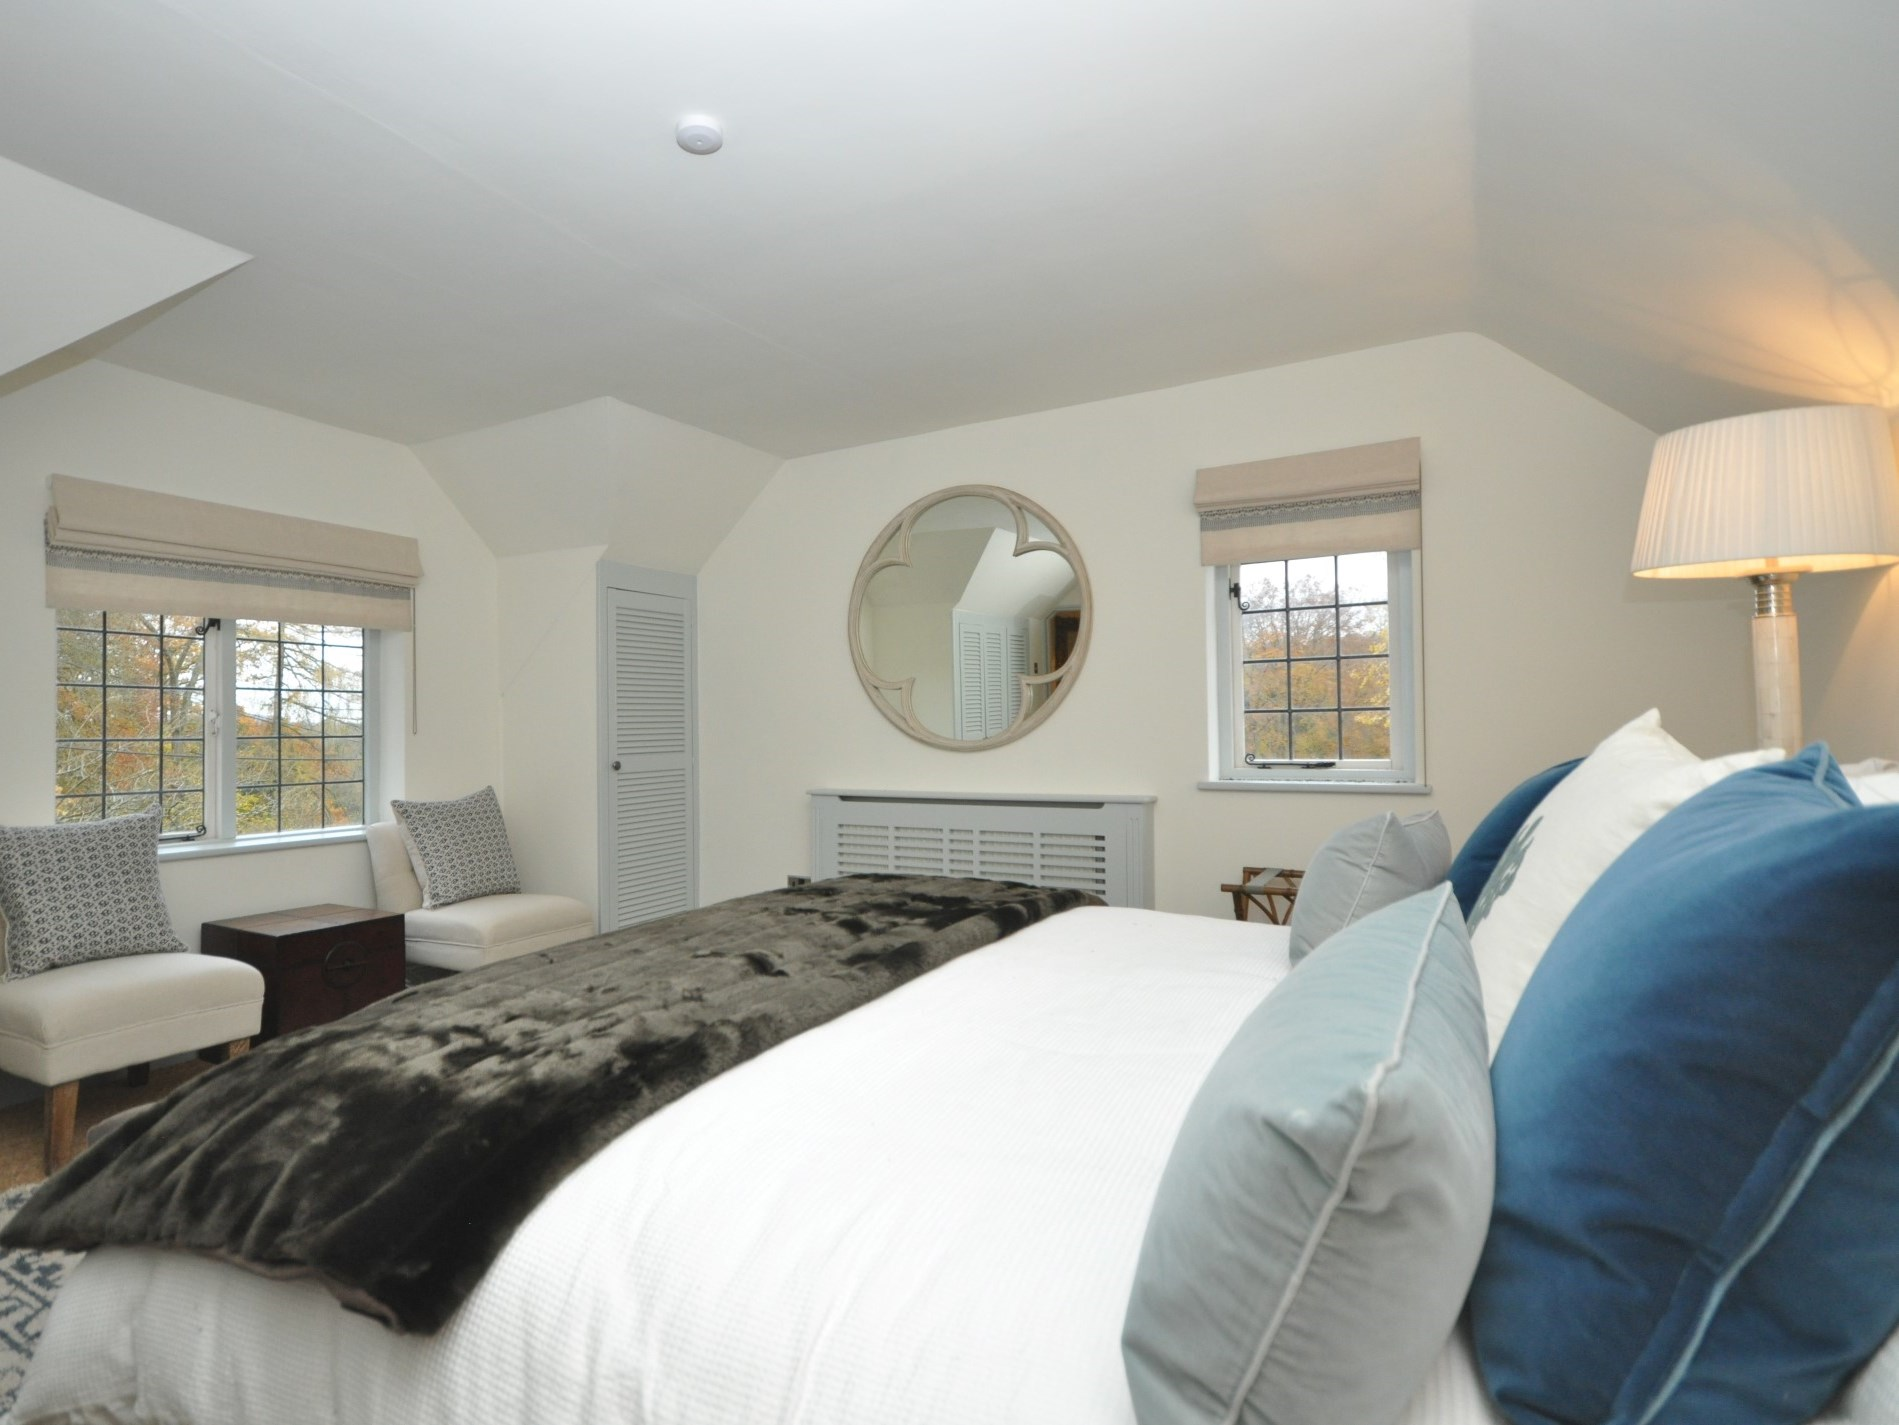 This beautiful bedroom enjoys a dual aspect